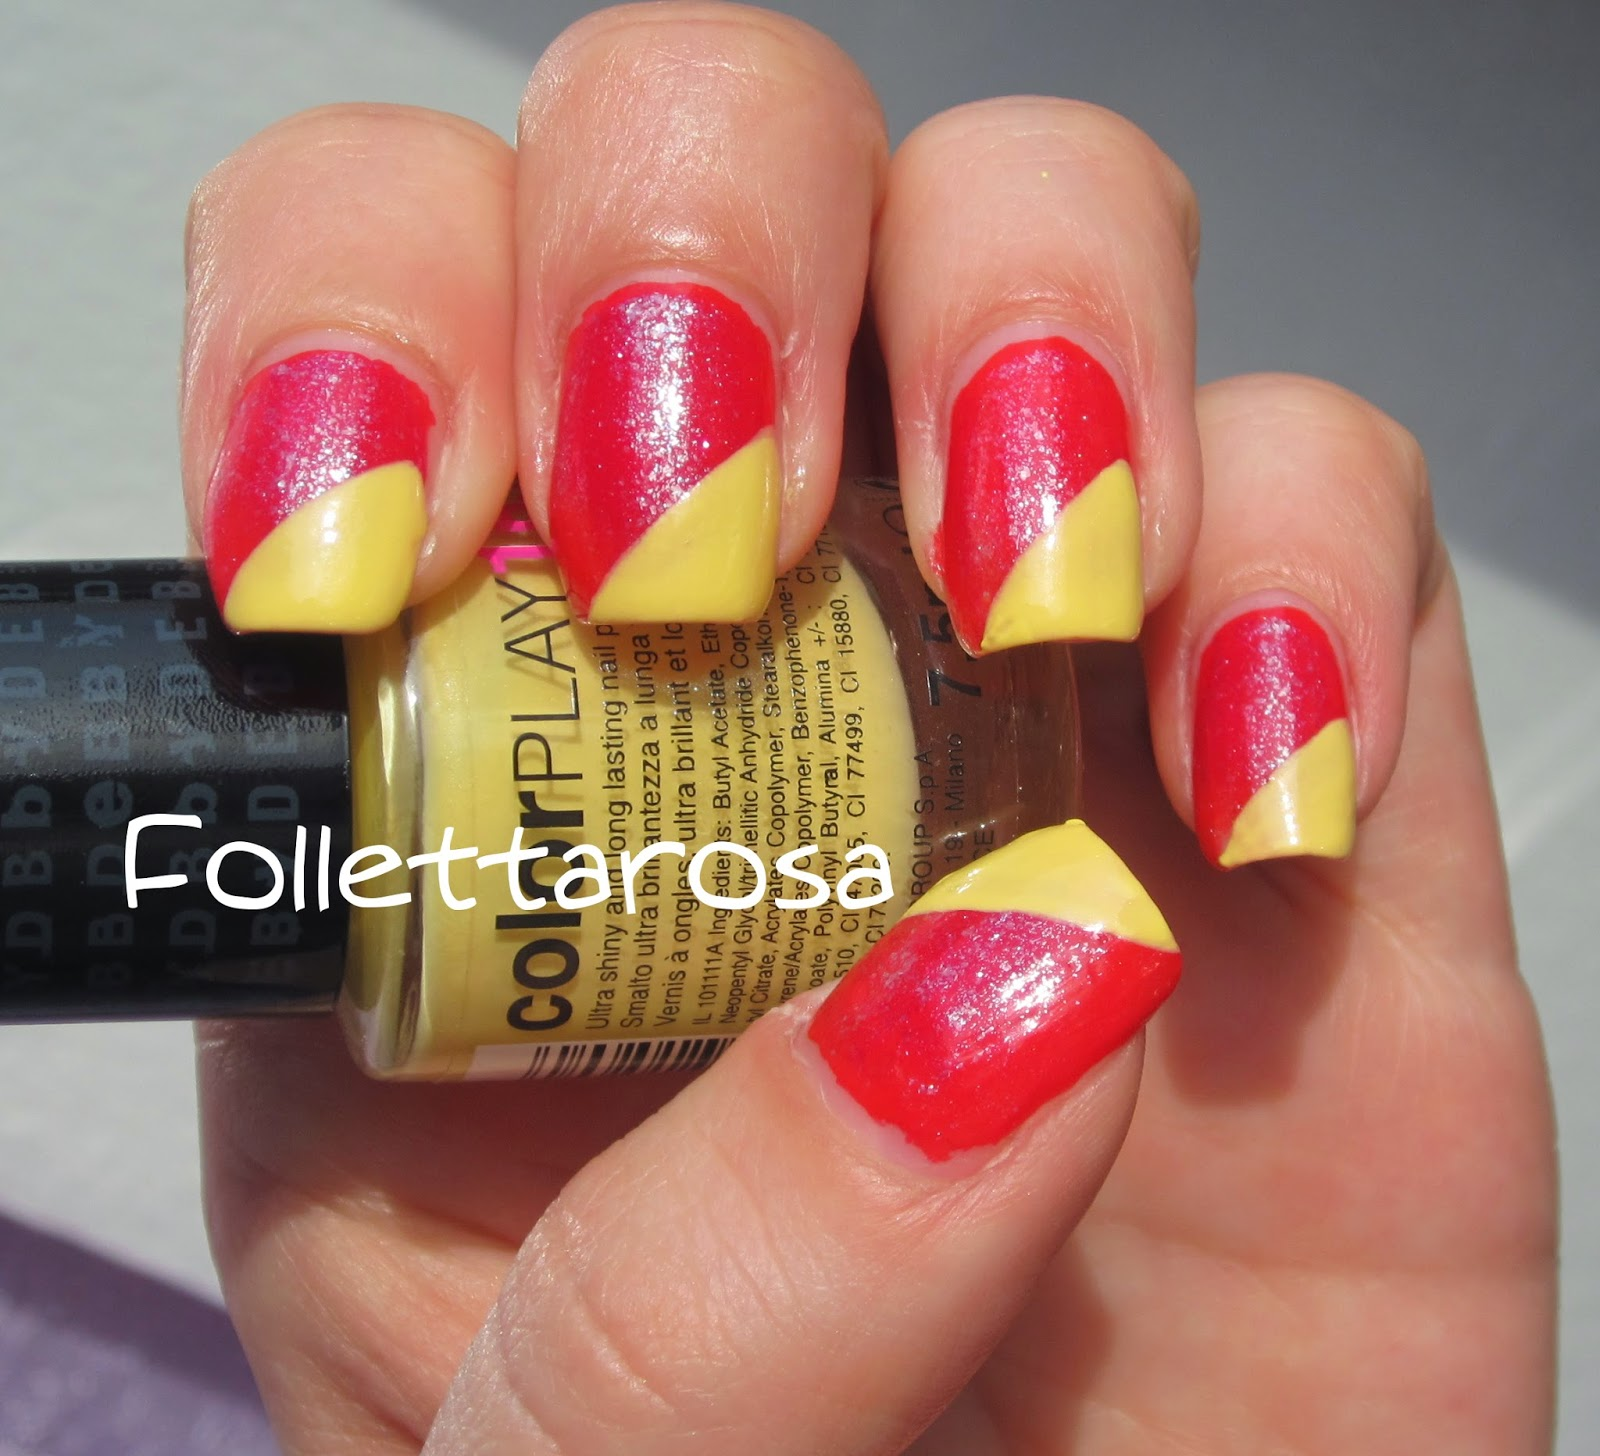 idee nnail art estate